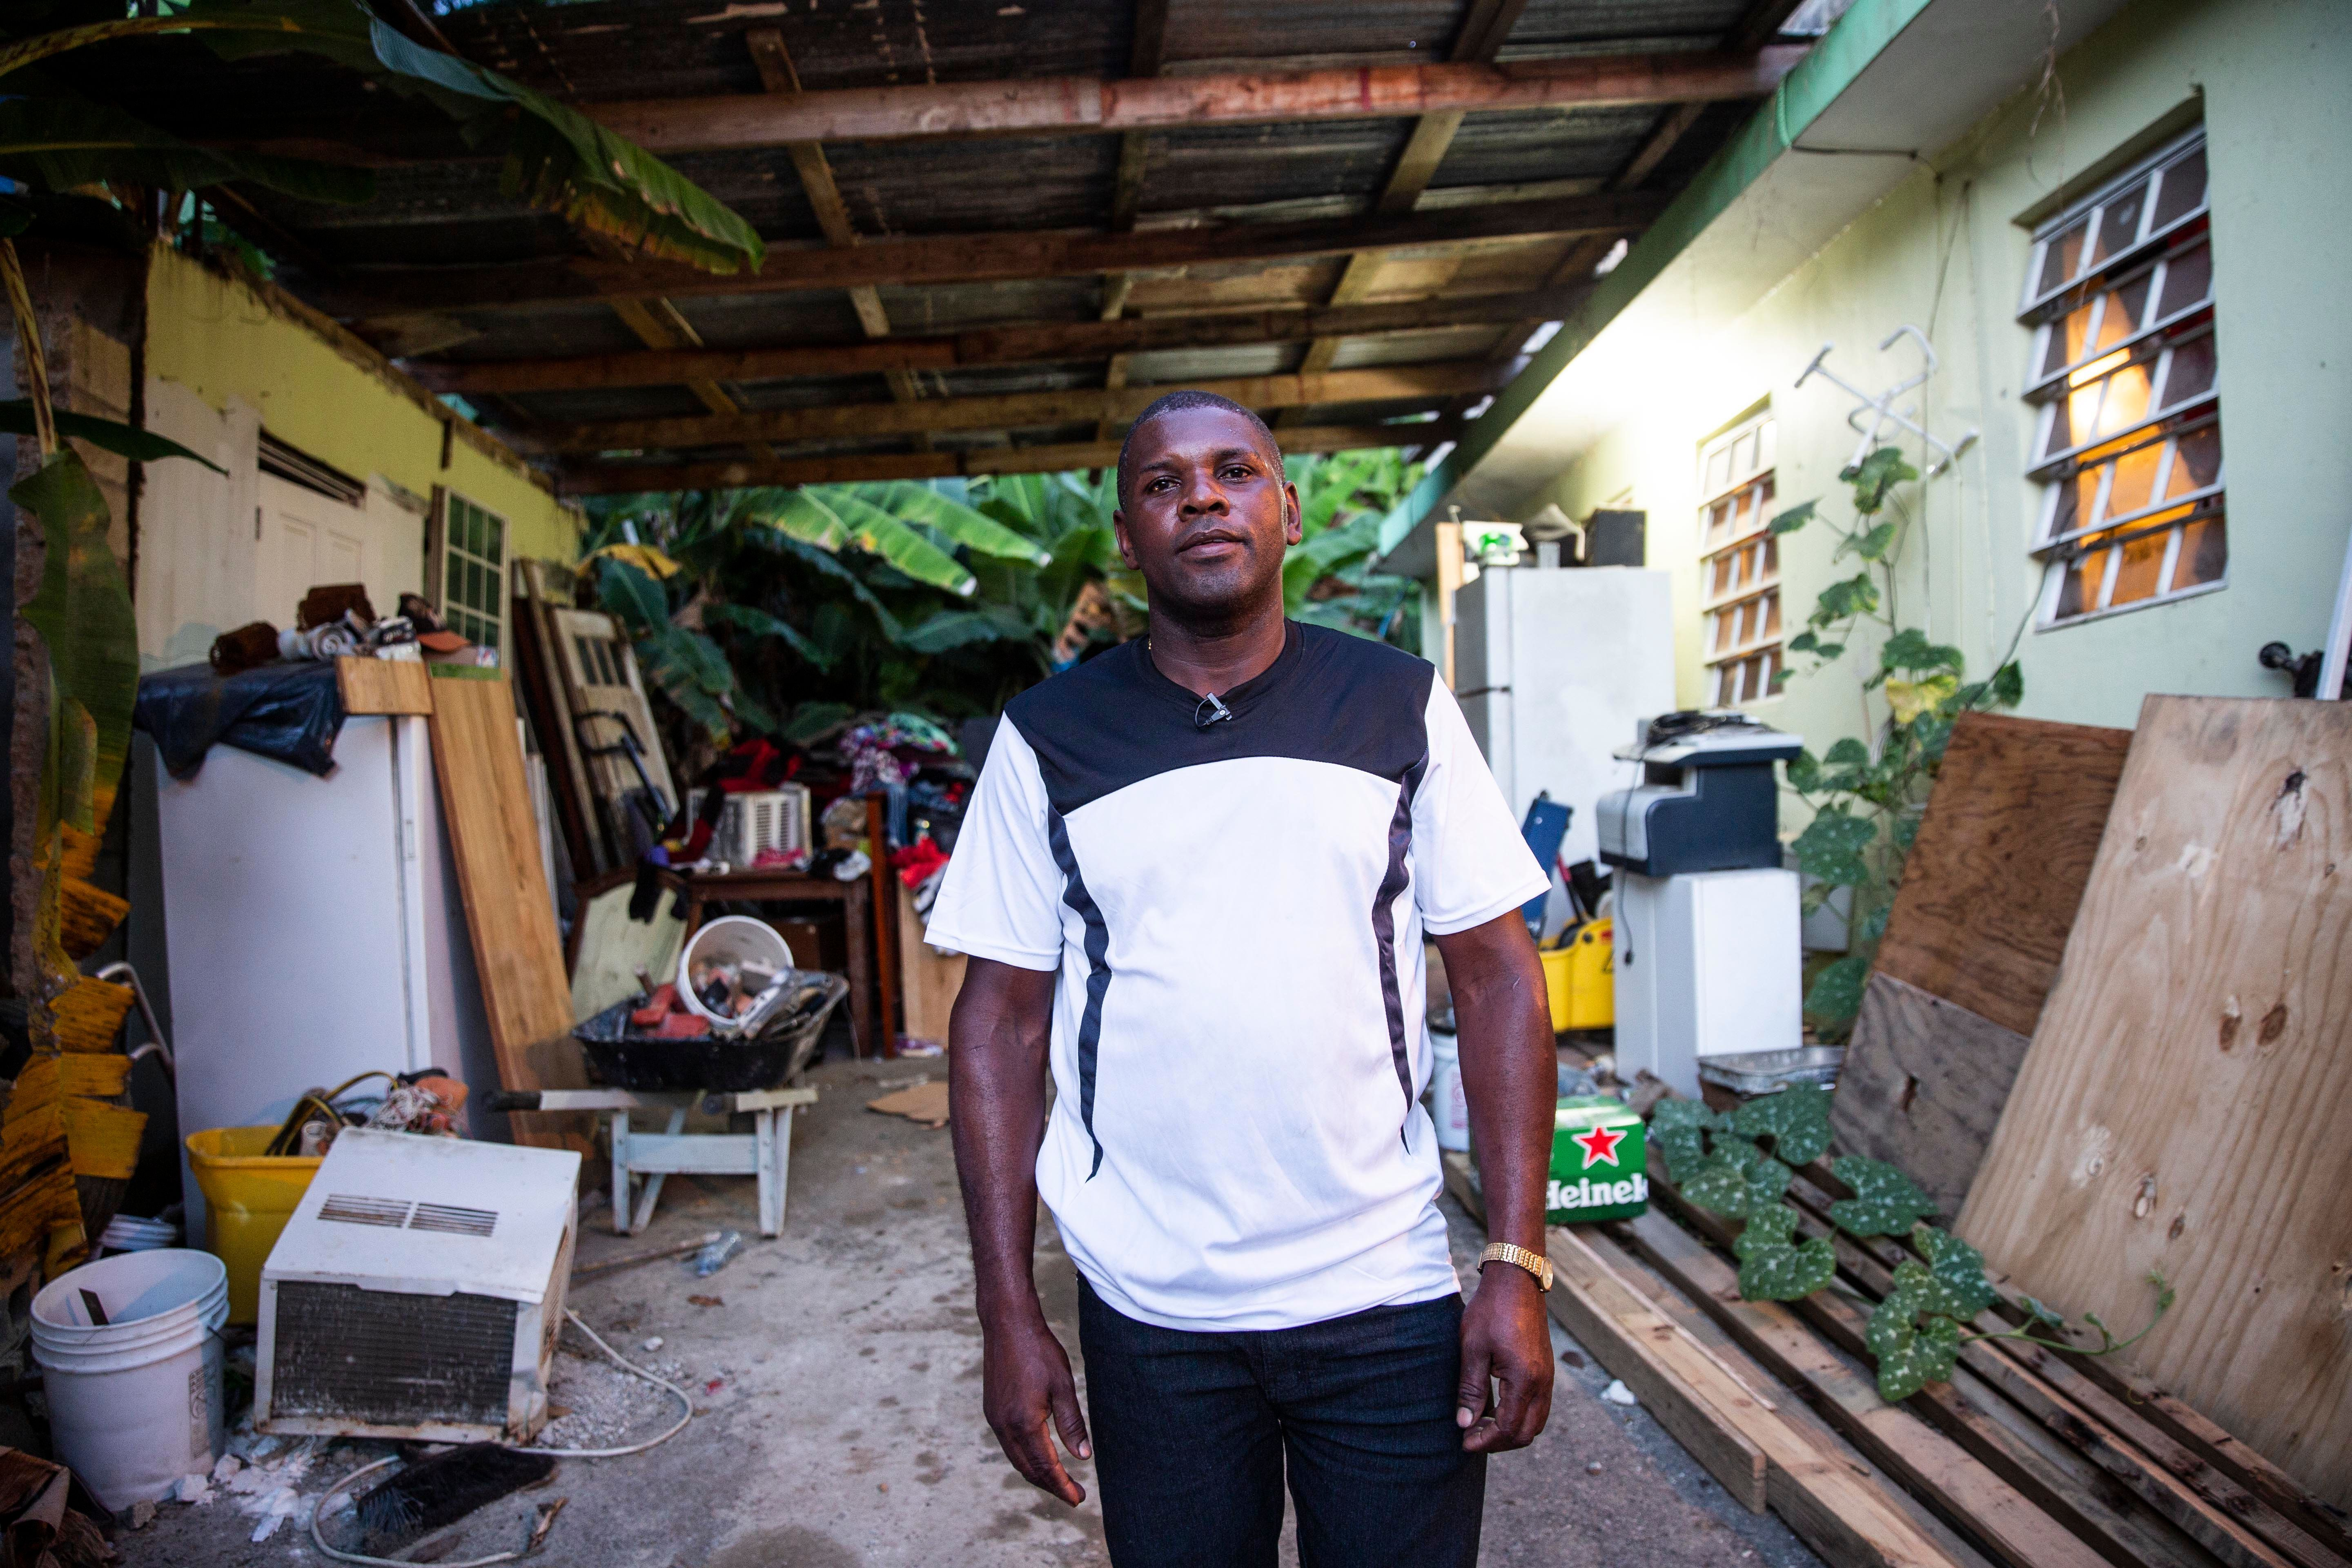 Hurricane Maria Took Almost Everything From Them. Now These Families Fear A Future Storm.